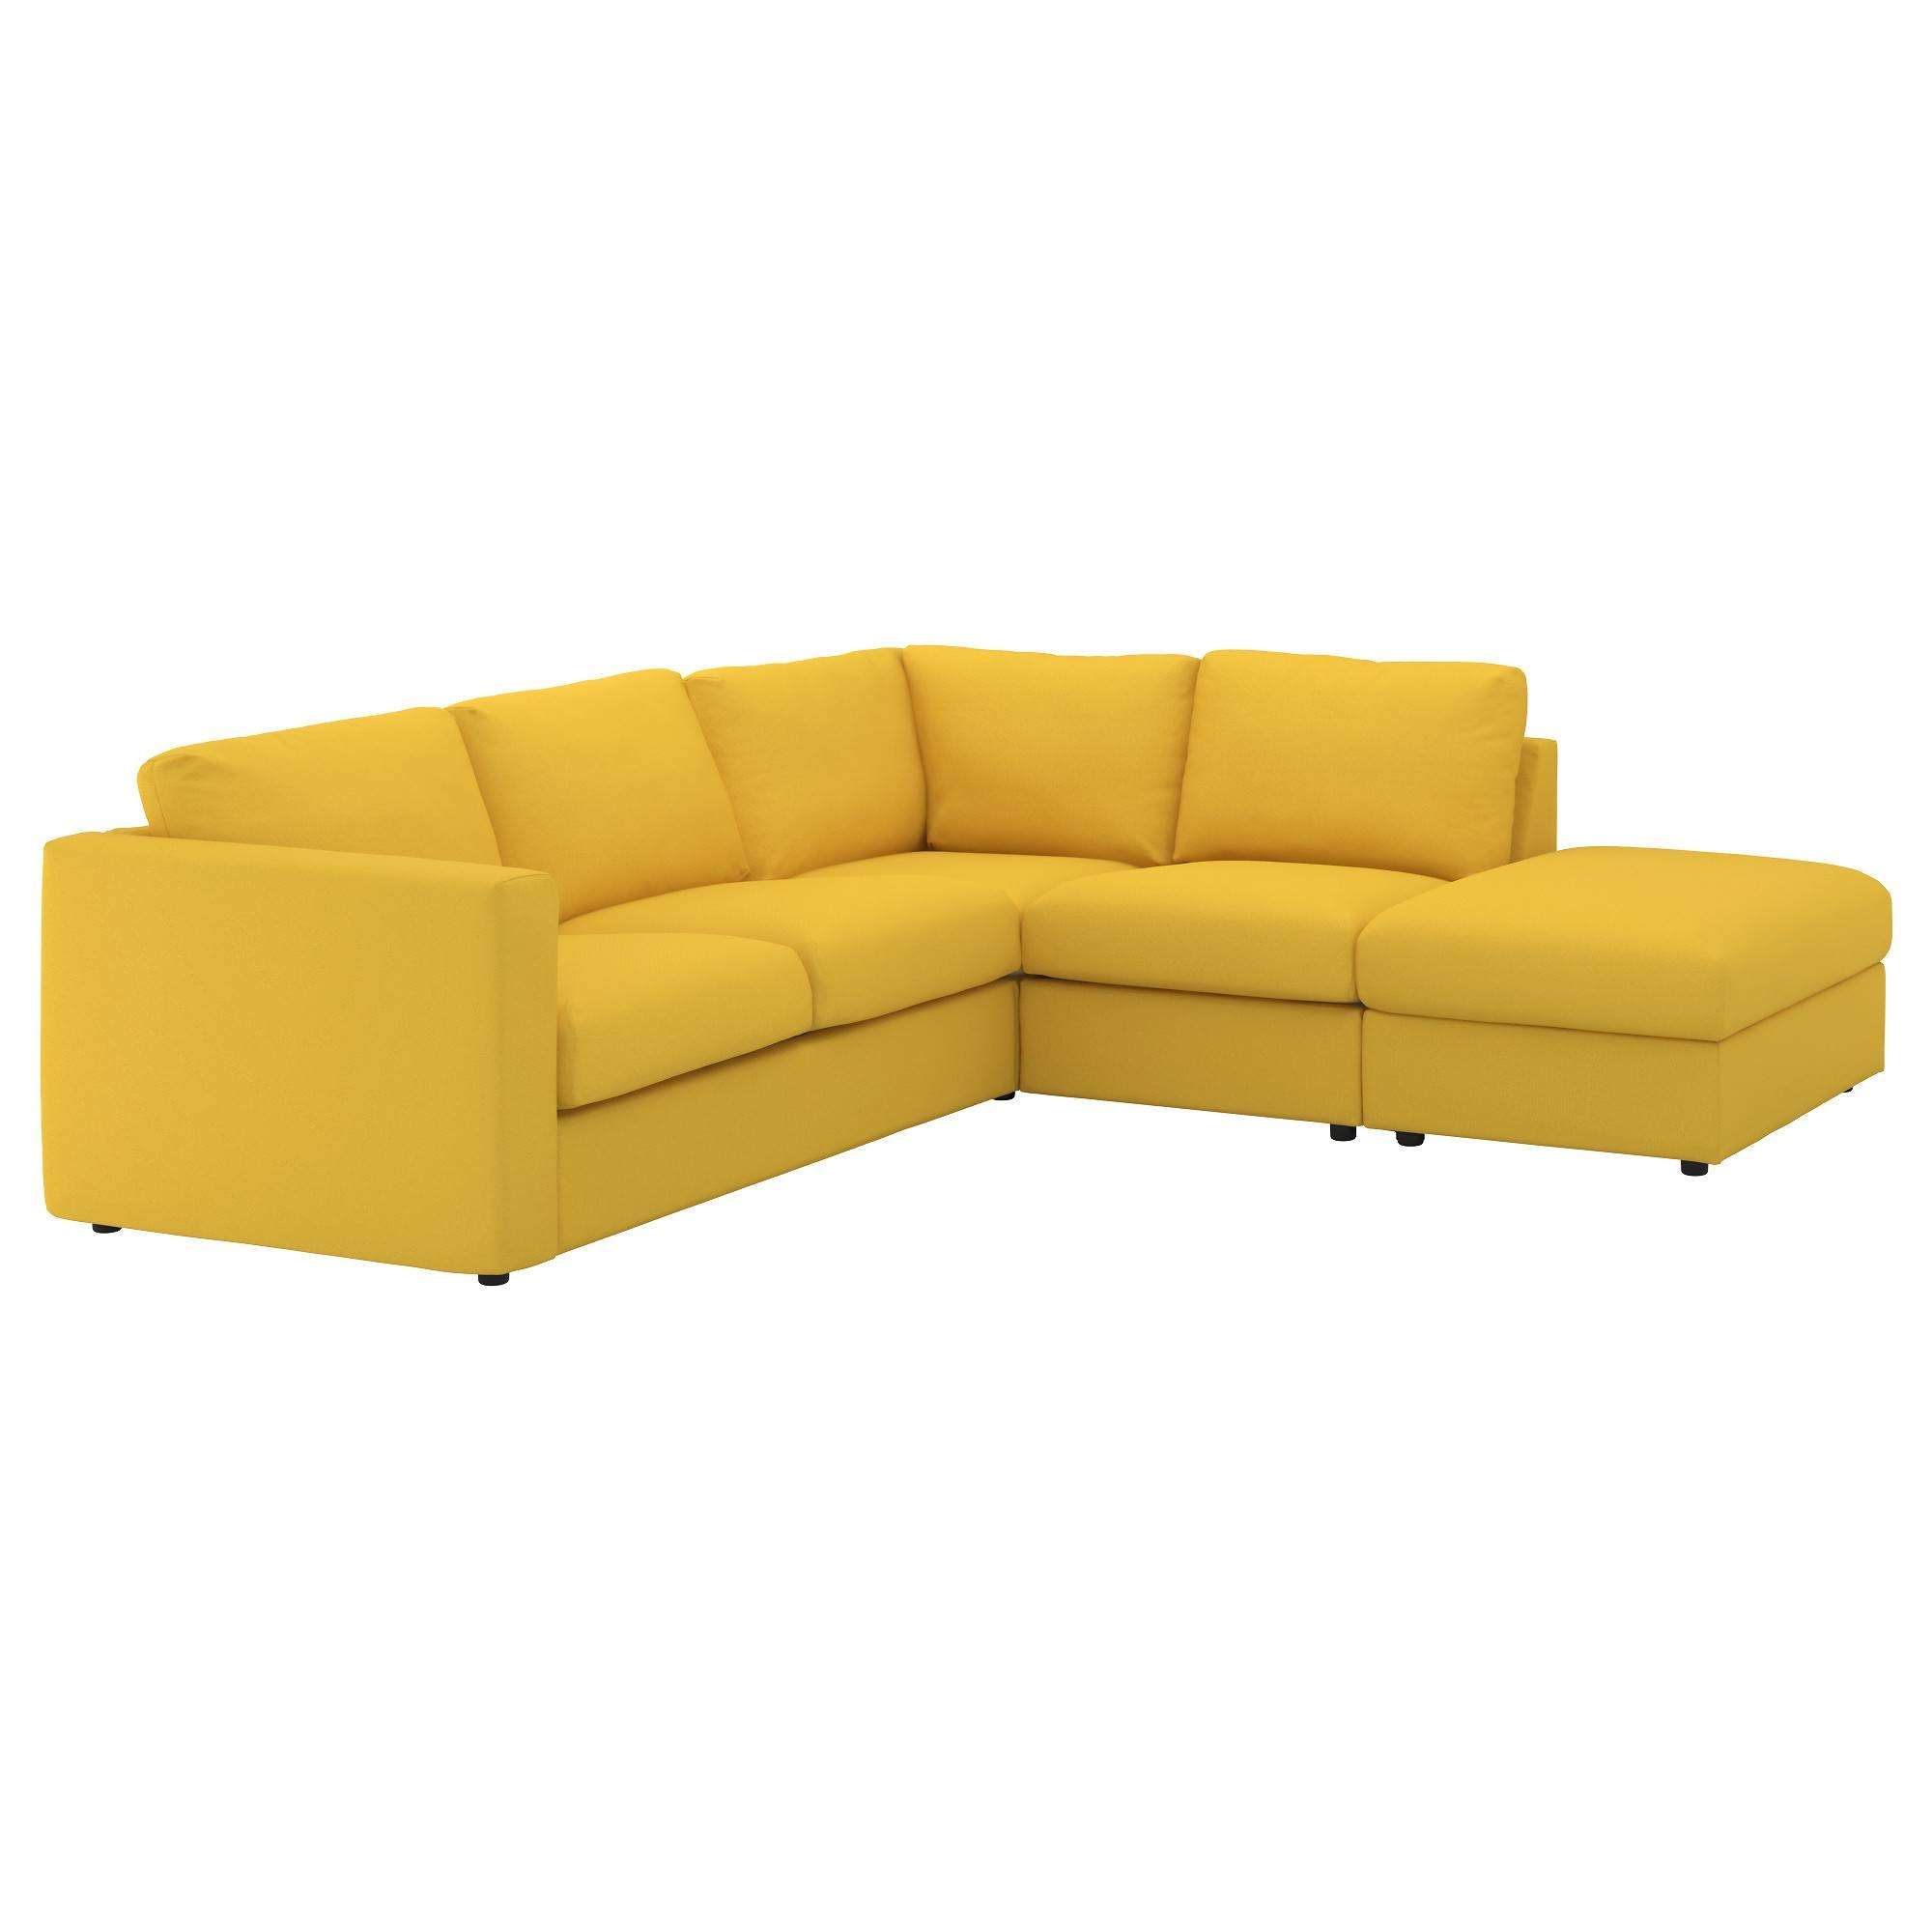 Vimle Corner Sofa, 4-Seat With Open End/gräsbo Golden-Yellow - Ikea inside Orange Ikea Sofas (Image 29 of 30)